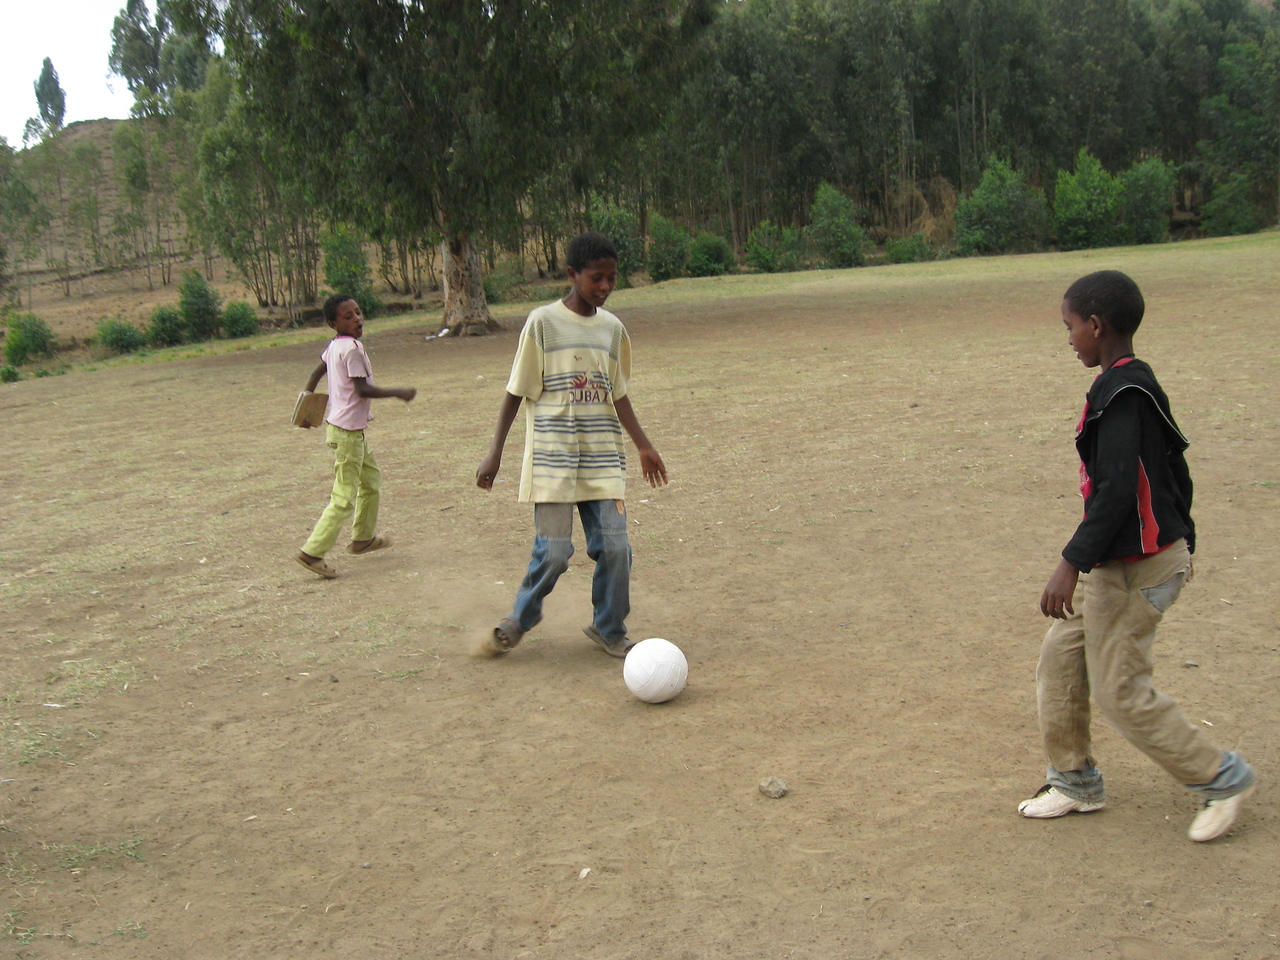 Football during breaktime